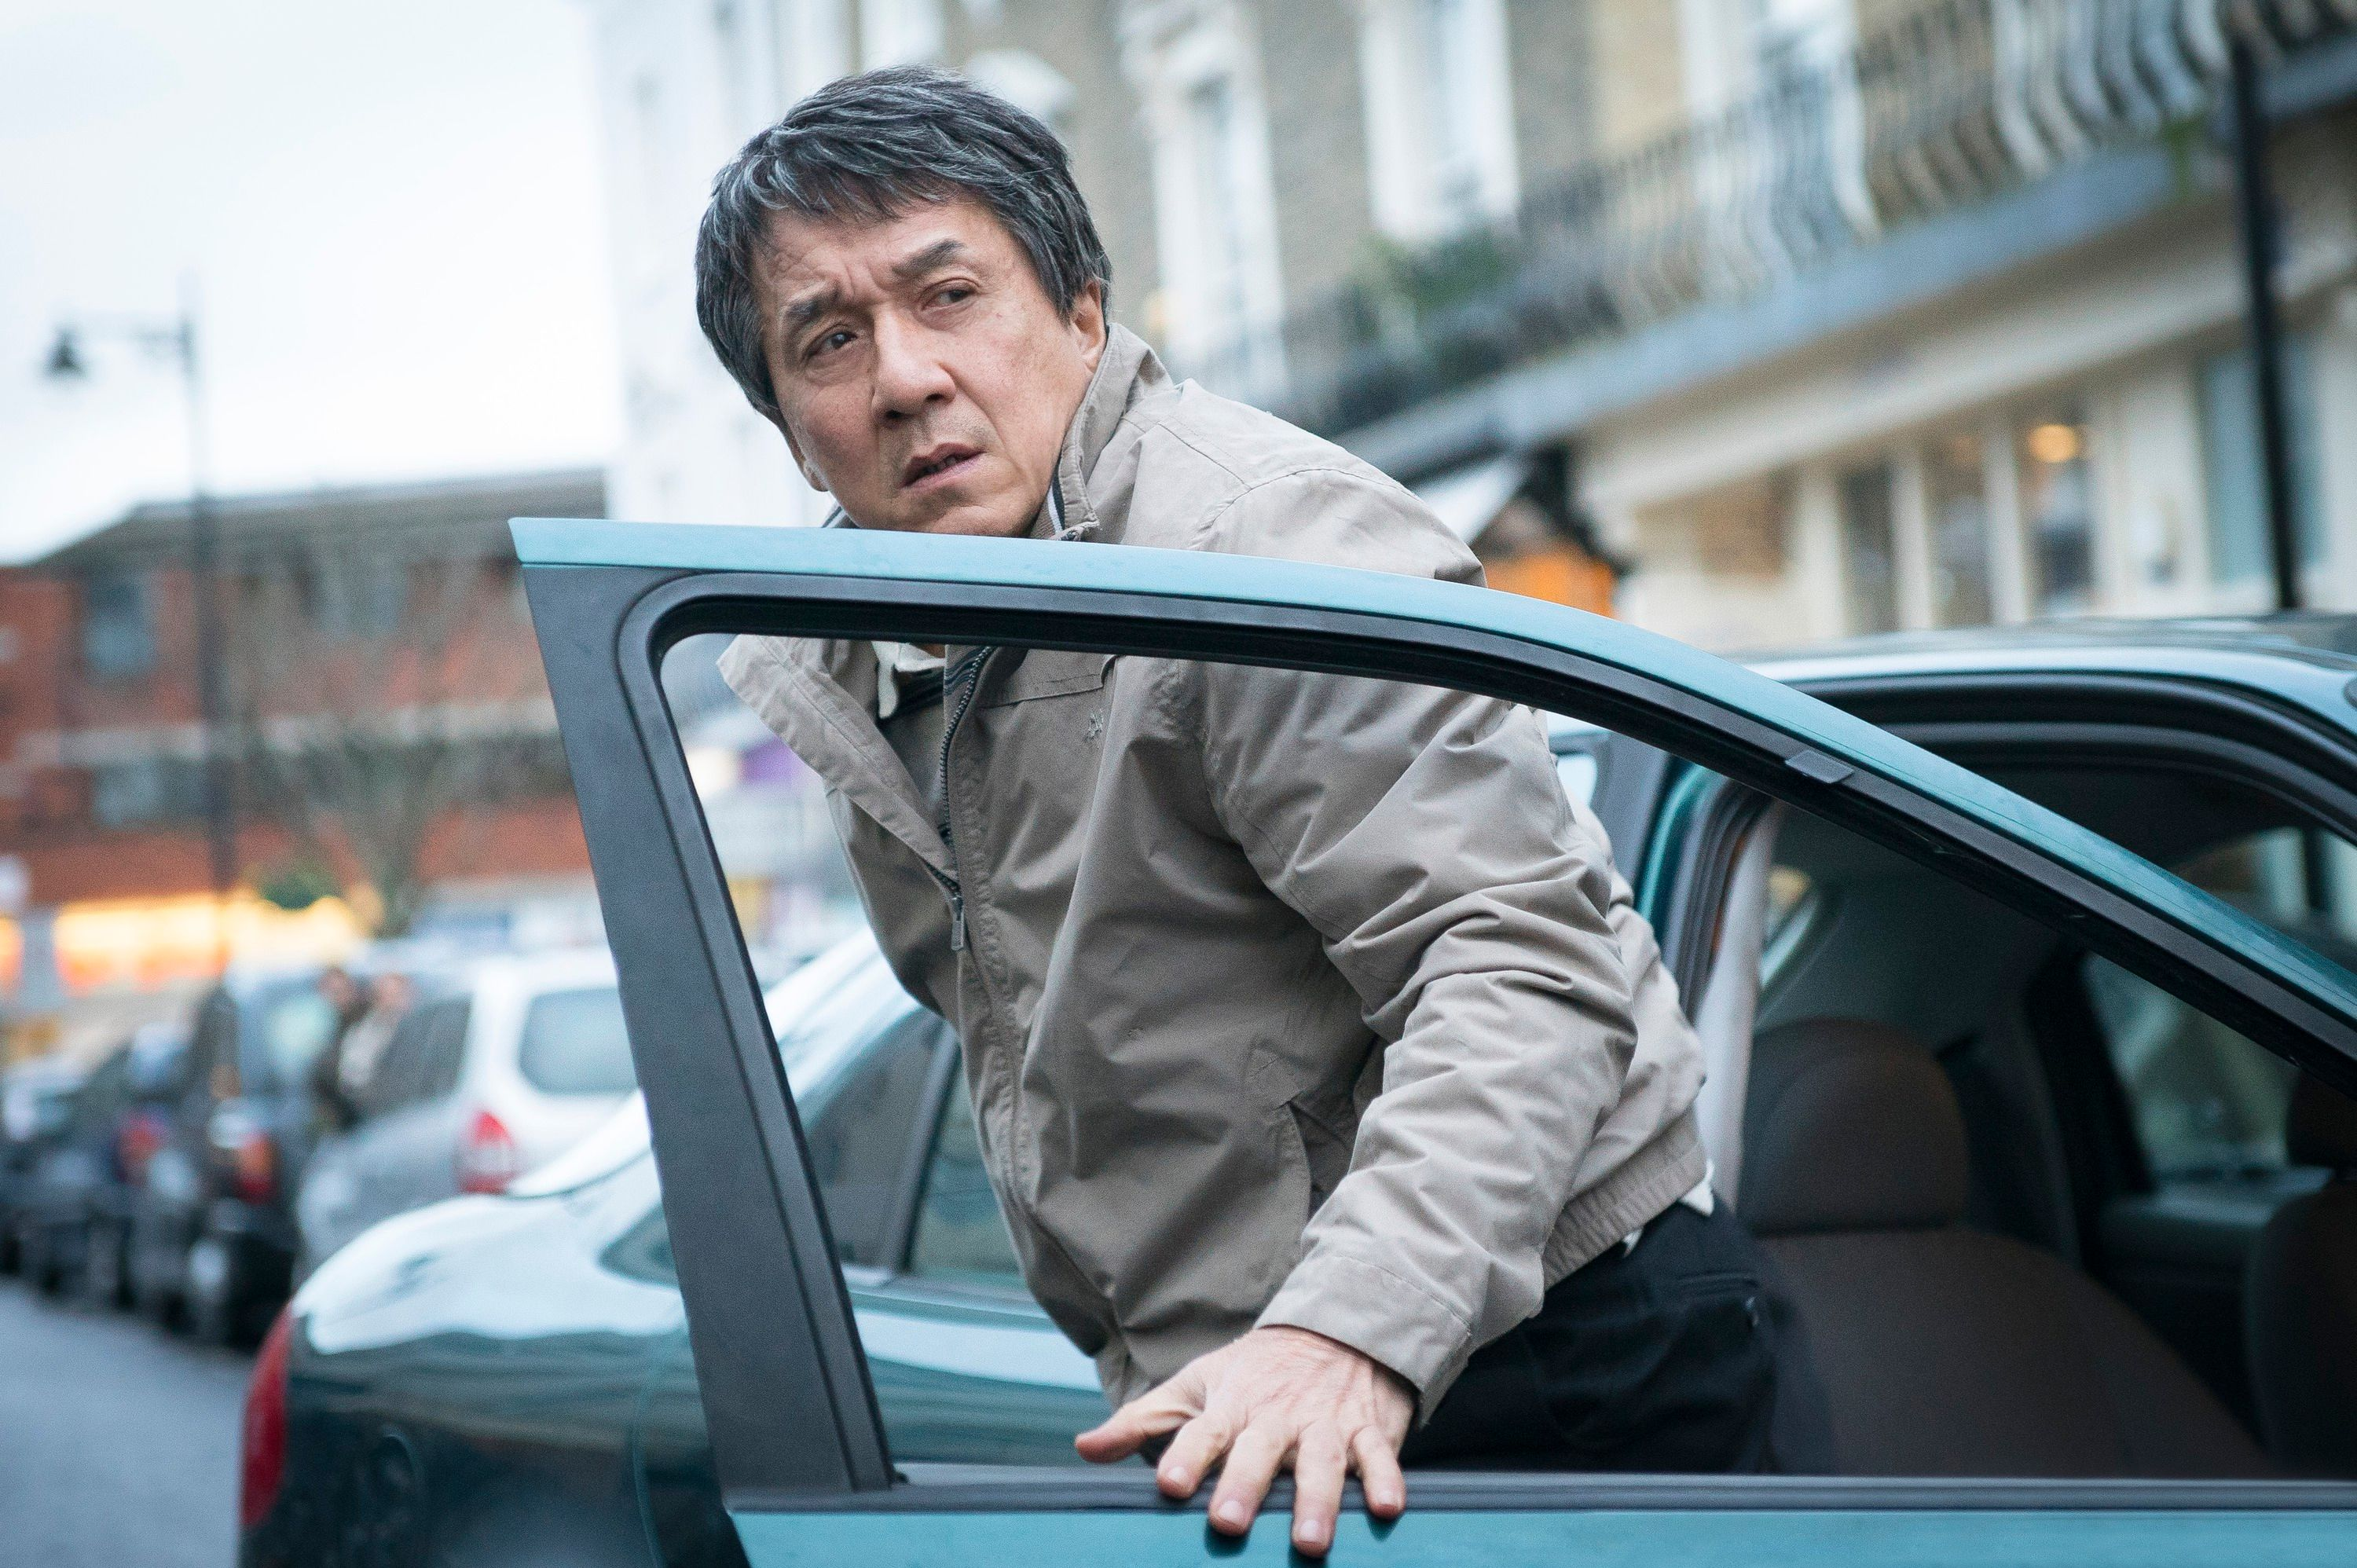 Jackie Chan: 'I Want To Be An Actor'